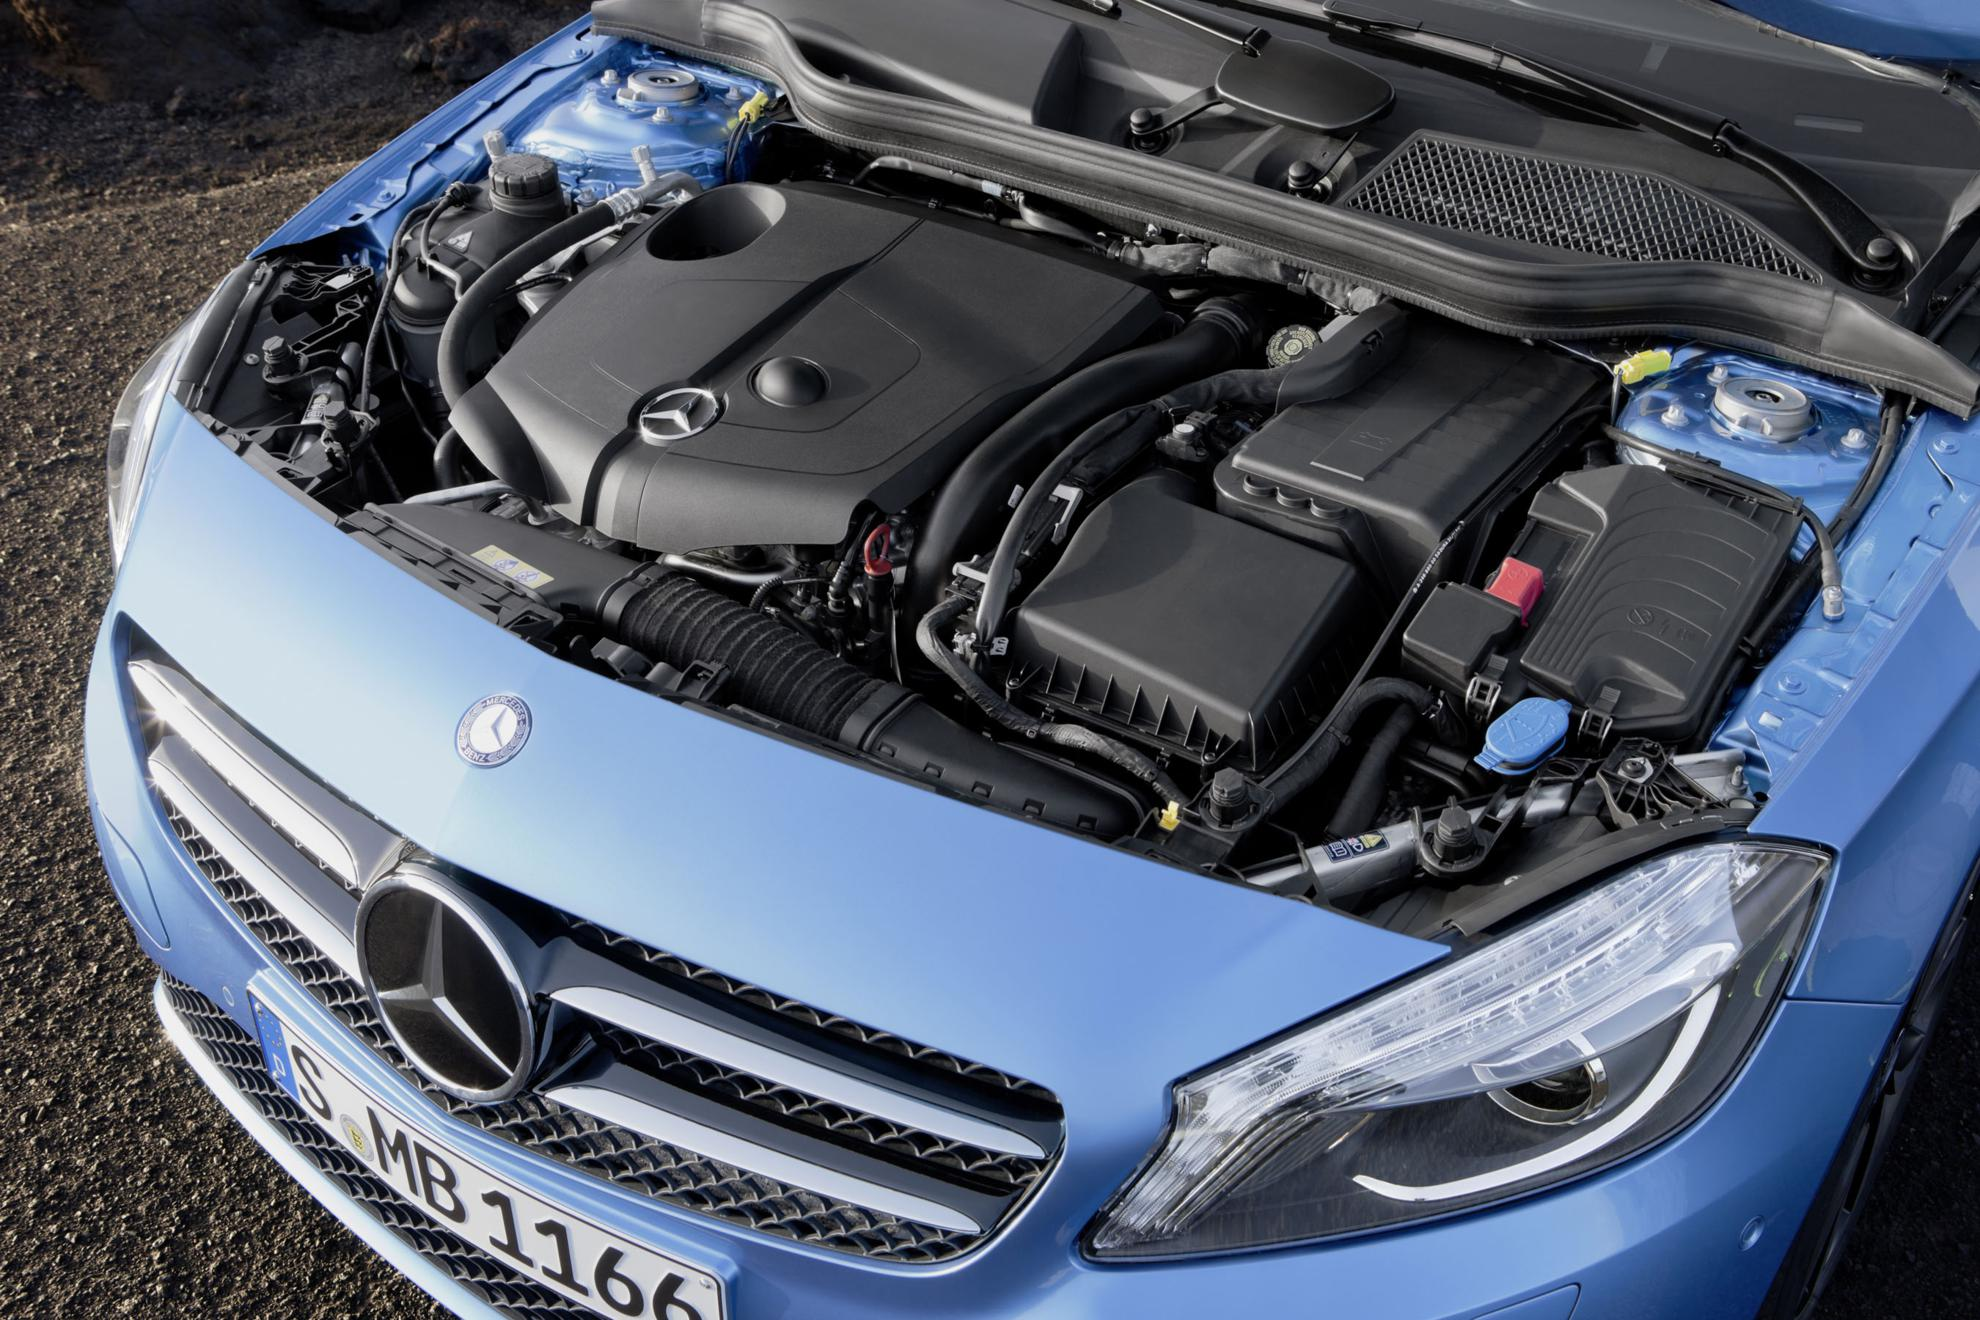 Mercedes-Benz A-Class Petrol Engine